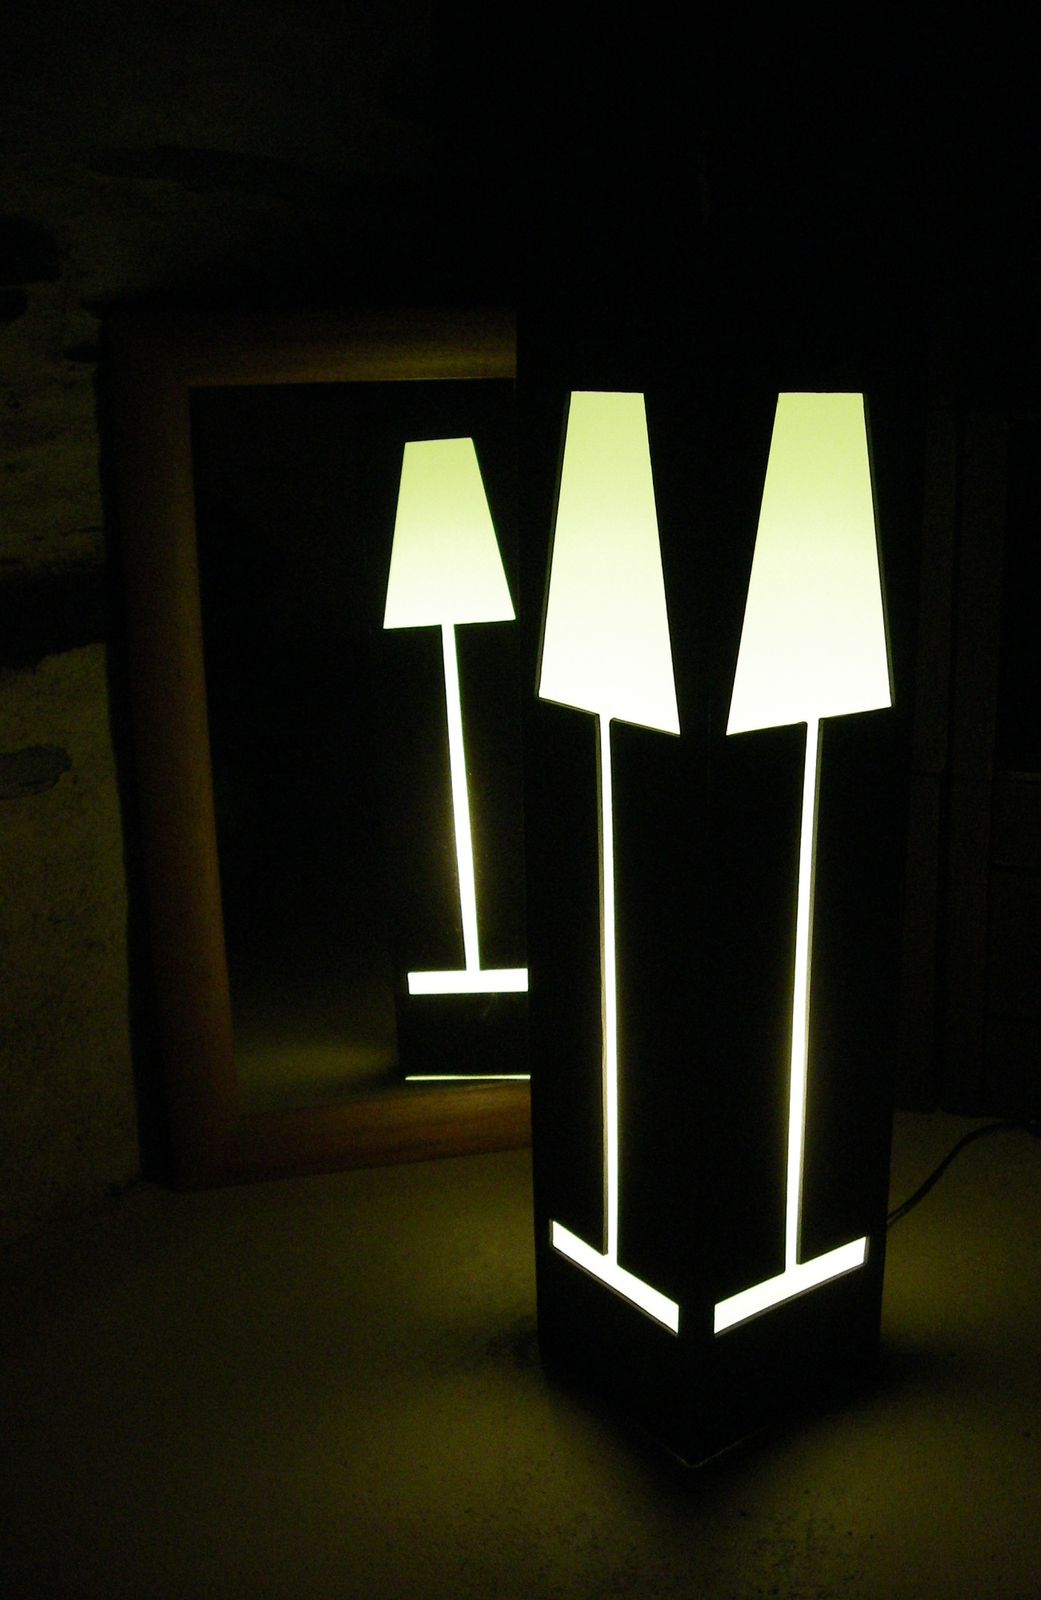 luminaires carton meubles en carton angers. Black Bedroom Furniture Sets. Home Design Ideas